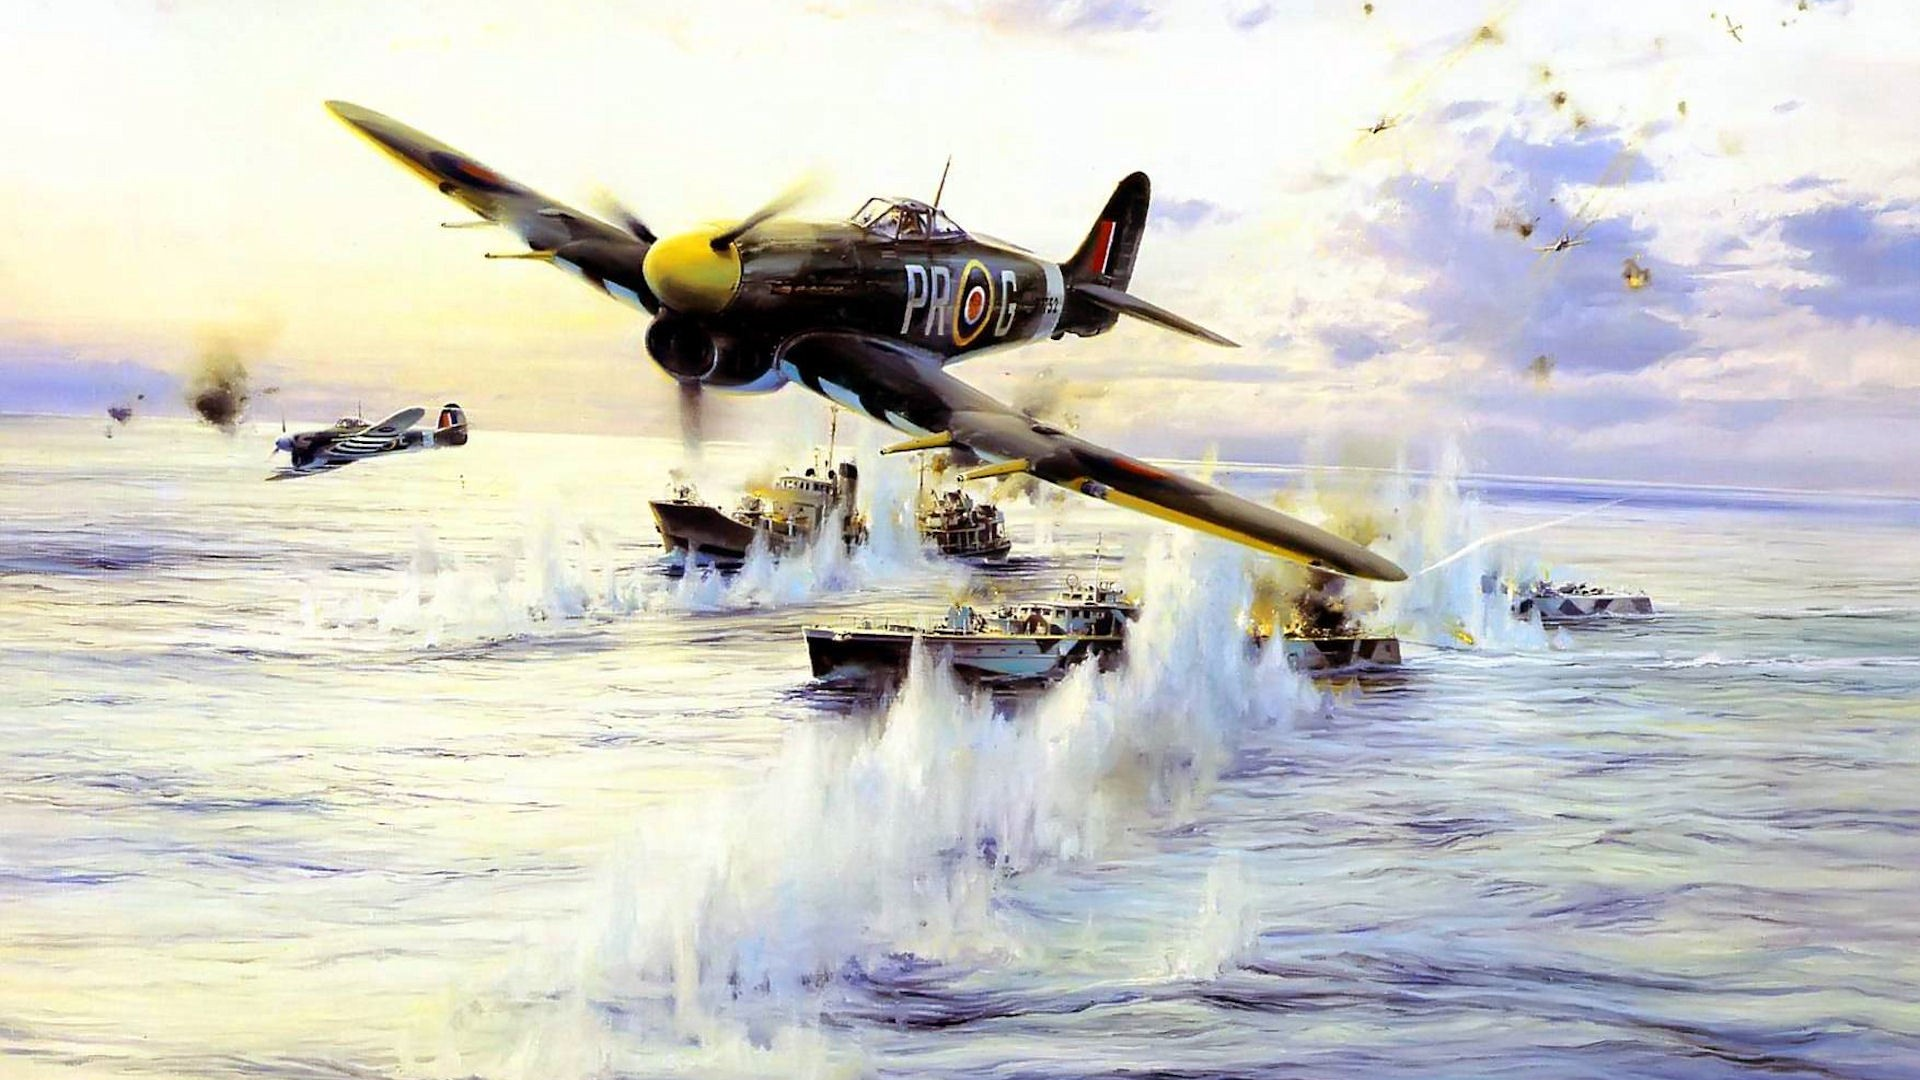 General 1920x1080 World War II airplane aircraft Hawker Typhoon military military aircraft D-Day